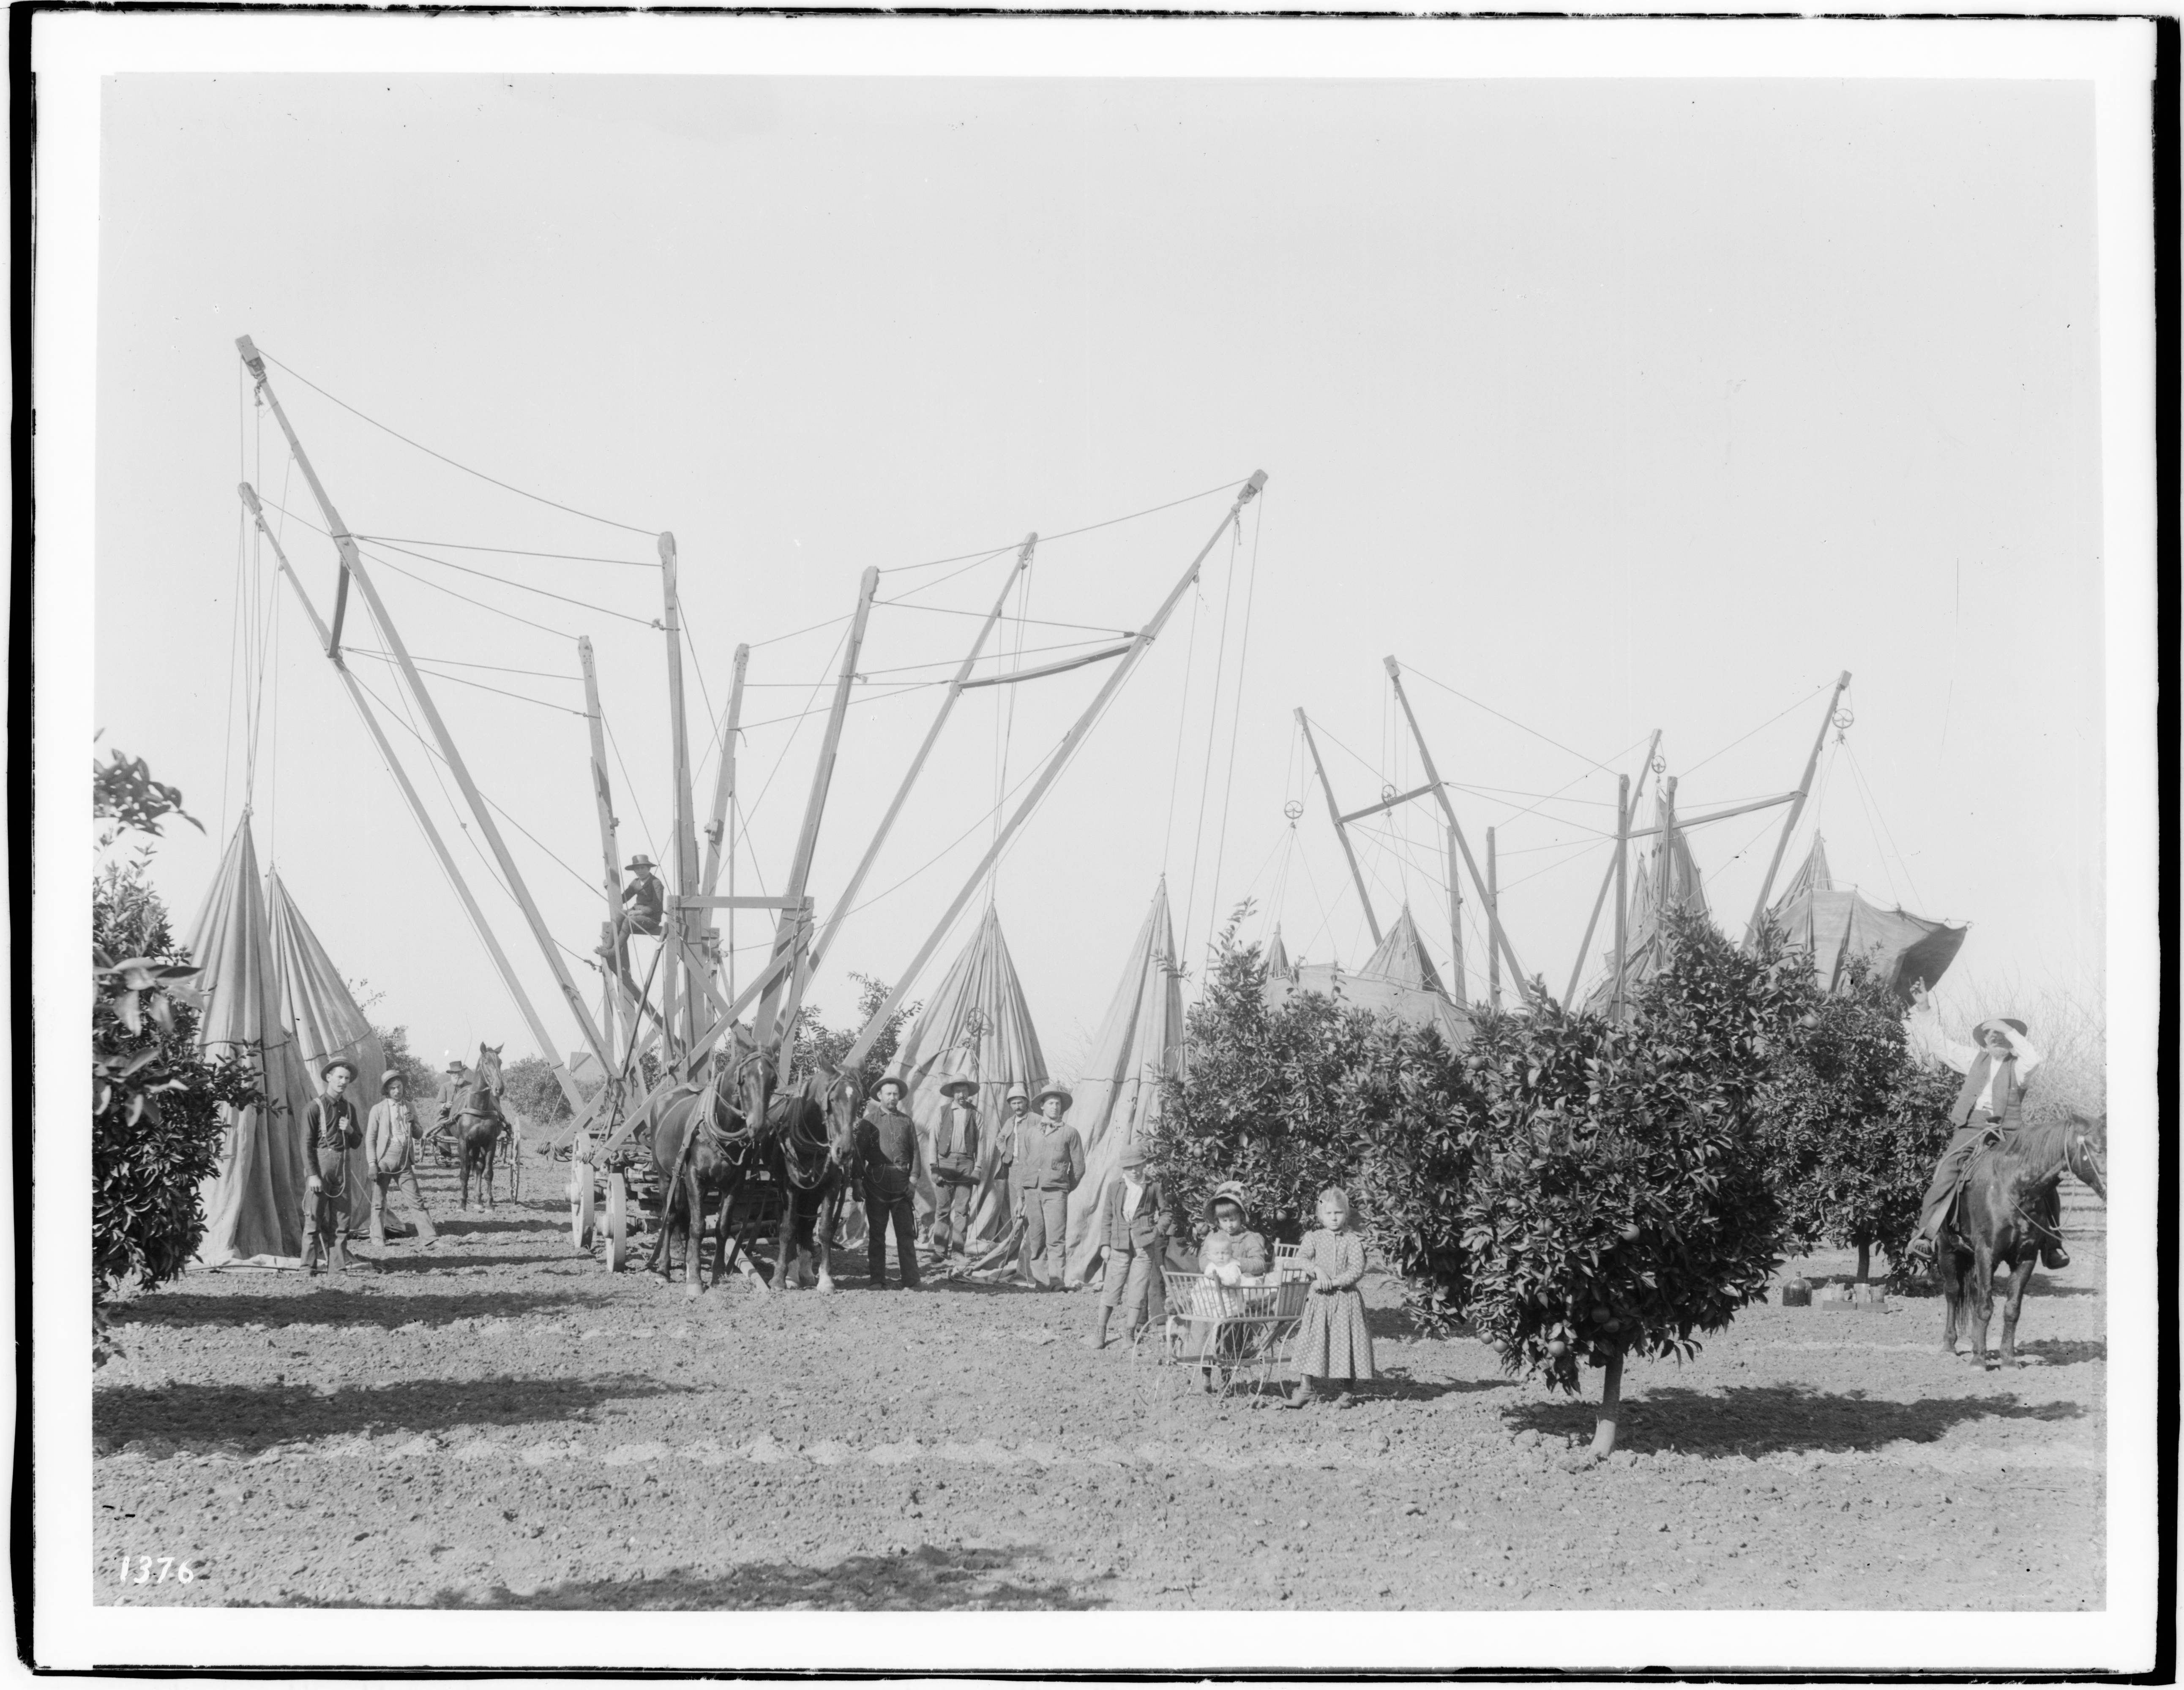 File:Fumigating equipment, workers and children in a citrus orchard, ca.1892